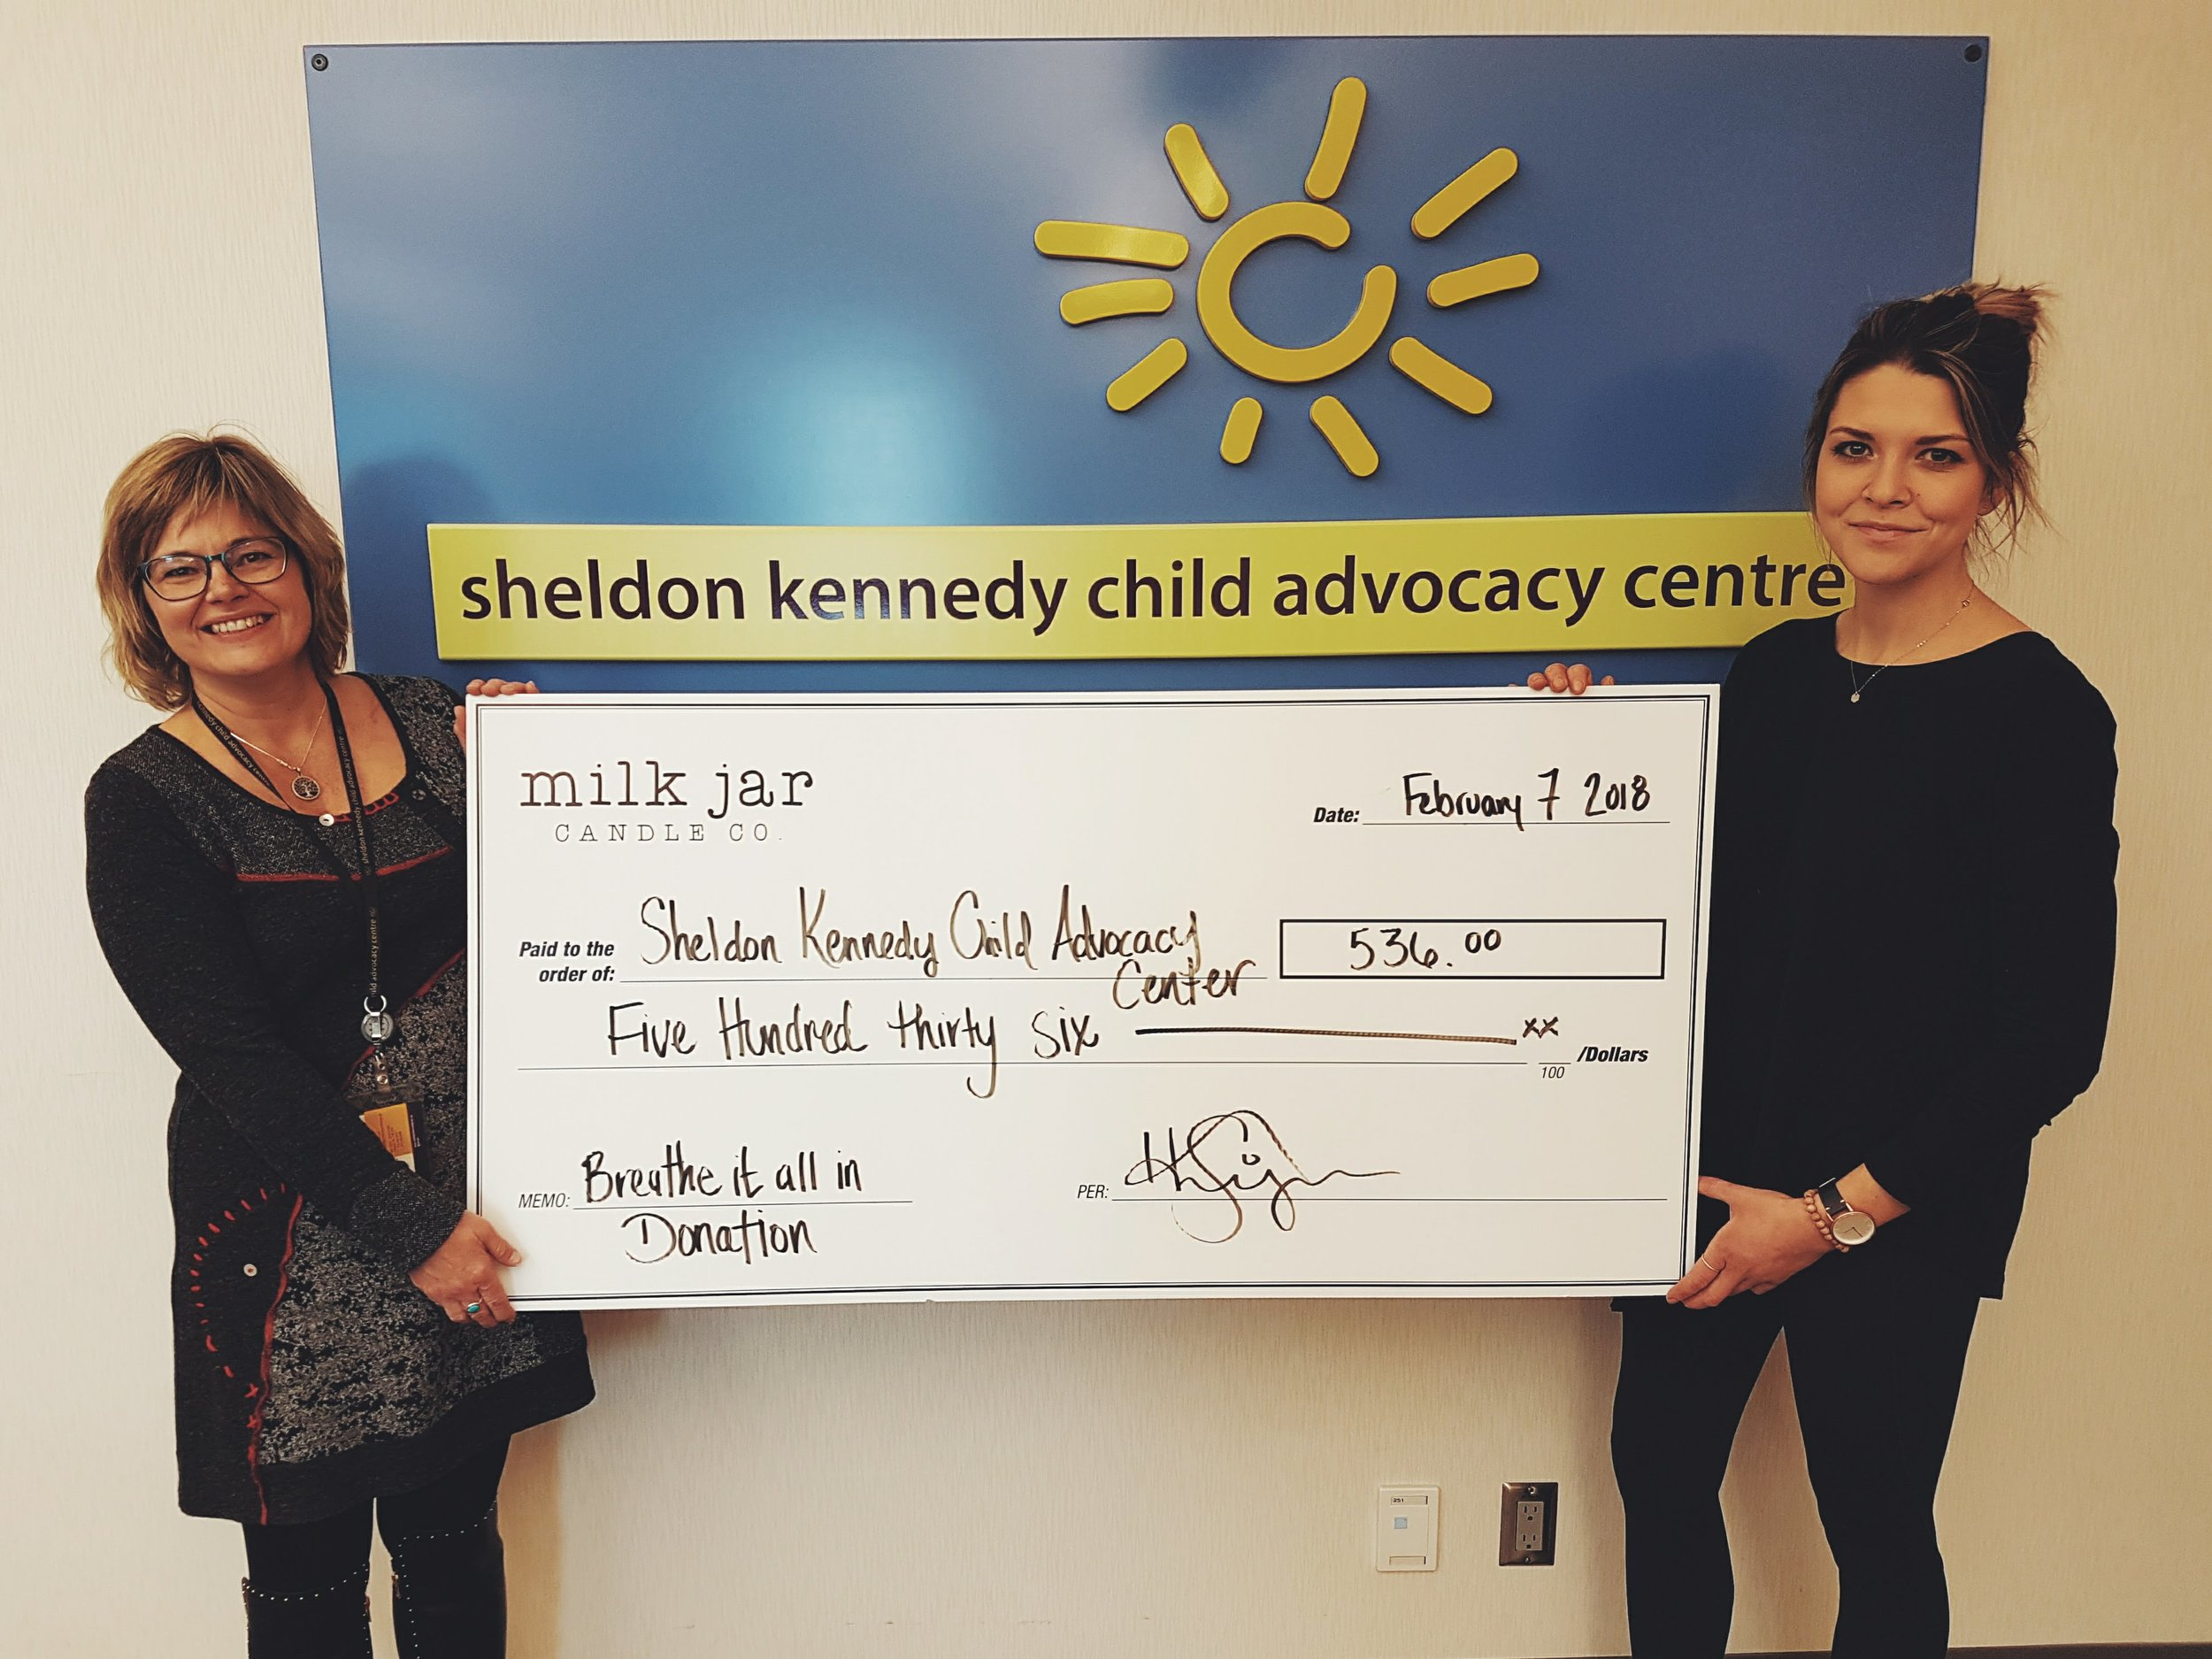 Sheldon Kennedy Child Advocacy Centre - Lululemon collaboration donationThe Sheldon Kennedy Child Advocacy Centre is a non-profit organization that is taking a leadership role to advance the way our country understands and addresses child abuse.Donations from our Breathe It All In holiday collaboration candle with Lululemon Calgary, supported this center.